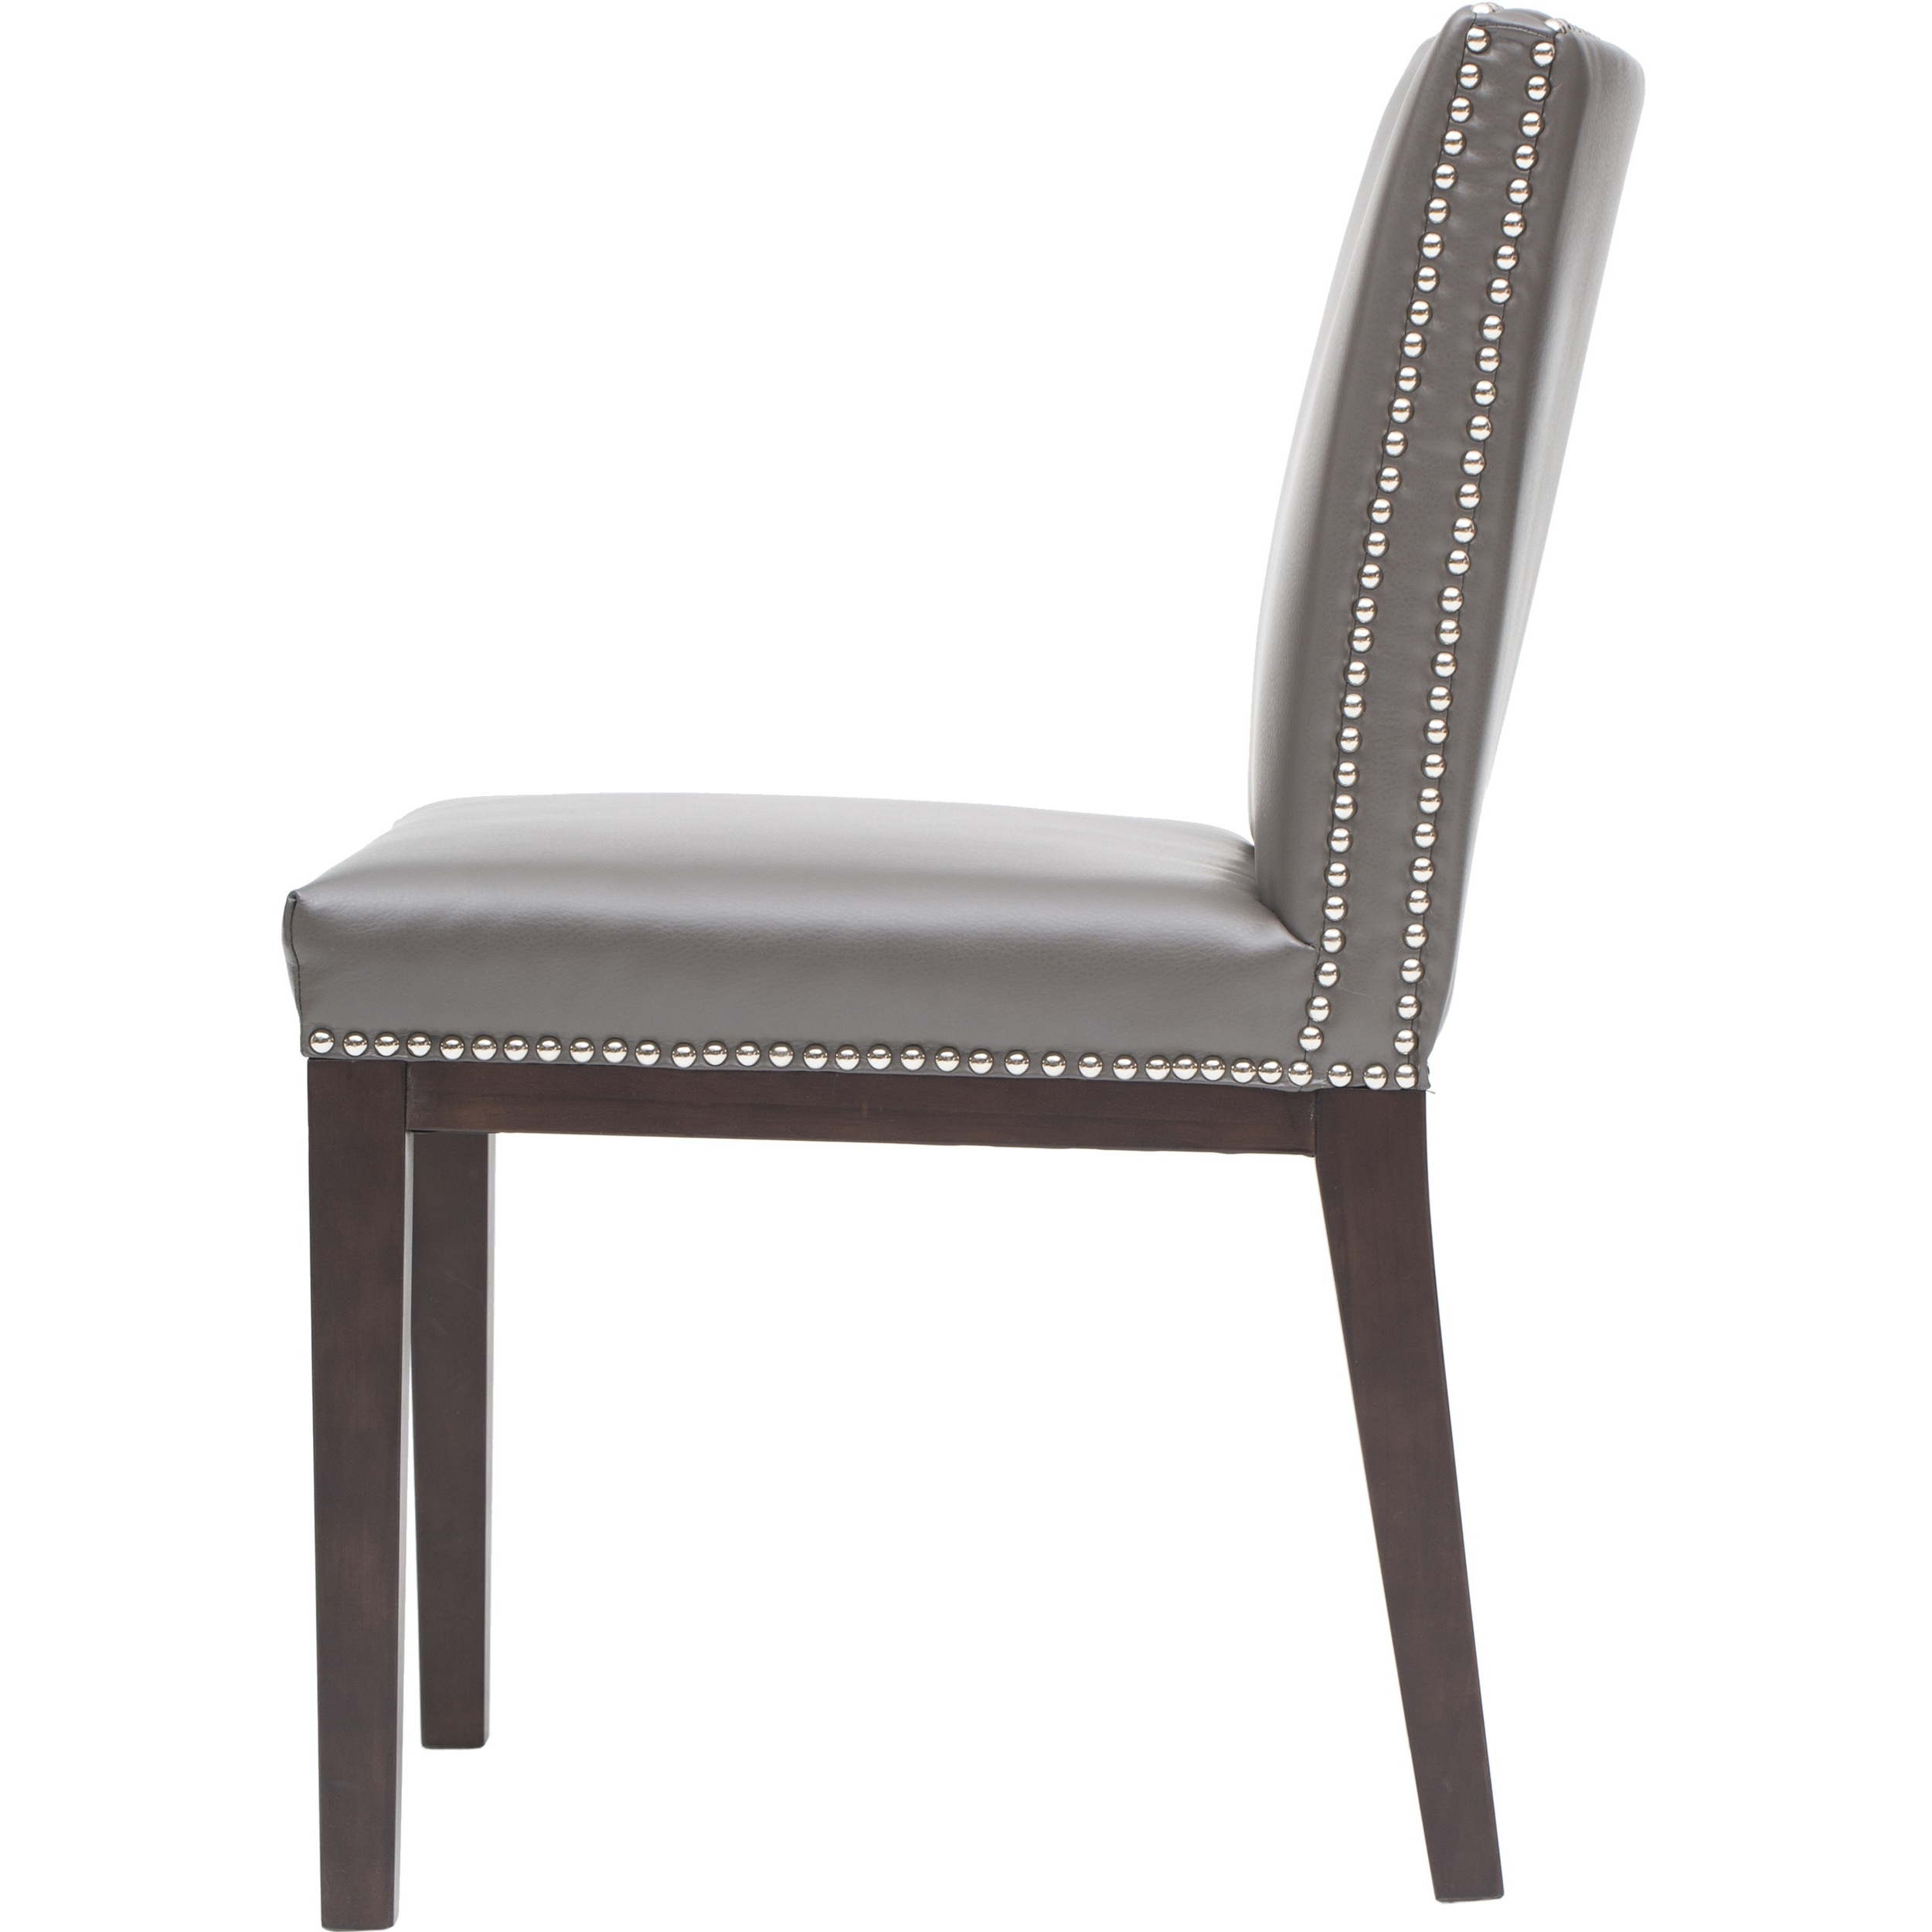 Preferred High Back Leather Dining Chairs Inside Modest Elegancy Of A Gray Leather Dining Chair (Gallery 20 of 25)